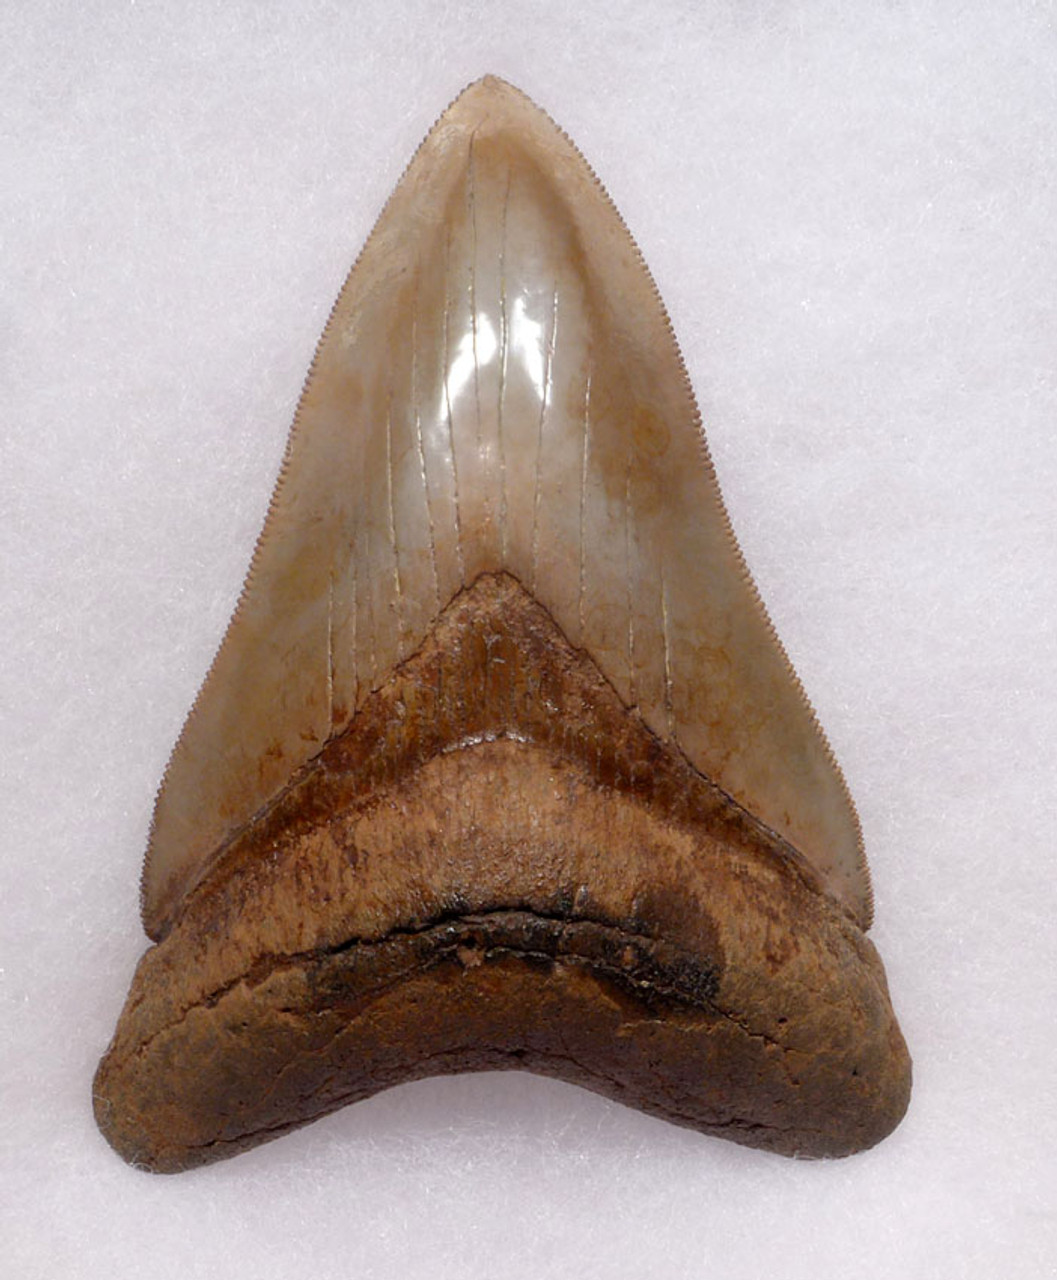 FINEST INVESTMENT GRADE PEARL GOLD AND RED SPOTTED 3.95 INCH MEGALODON SHARK TOOTH *SH6-385